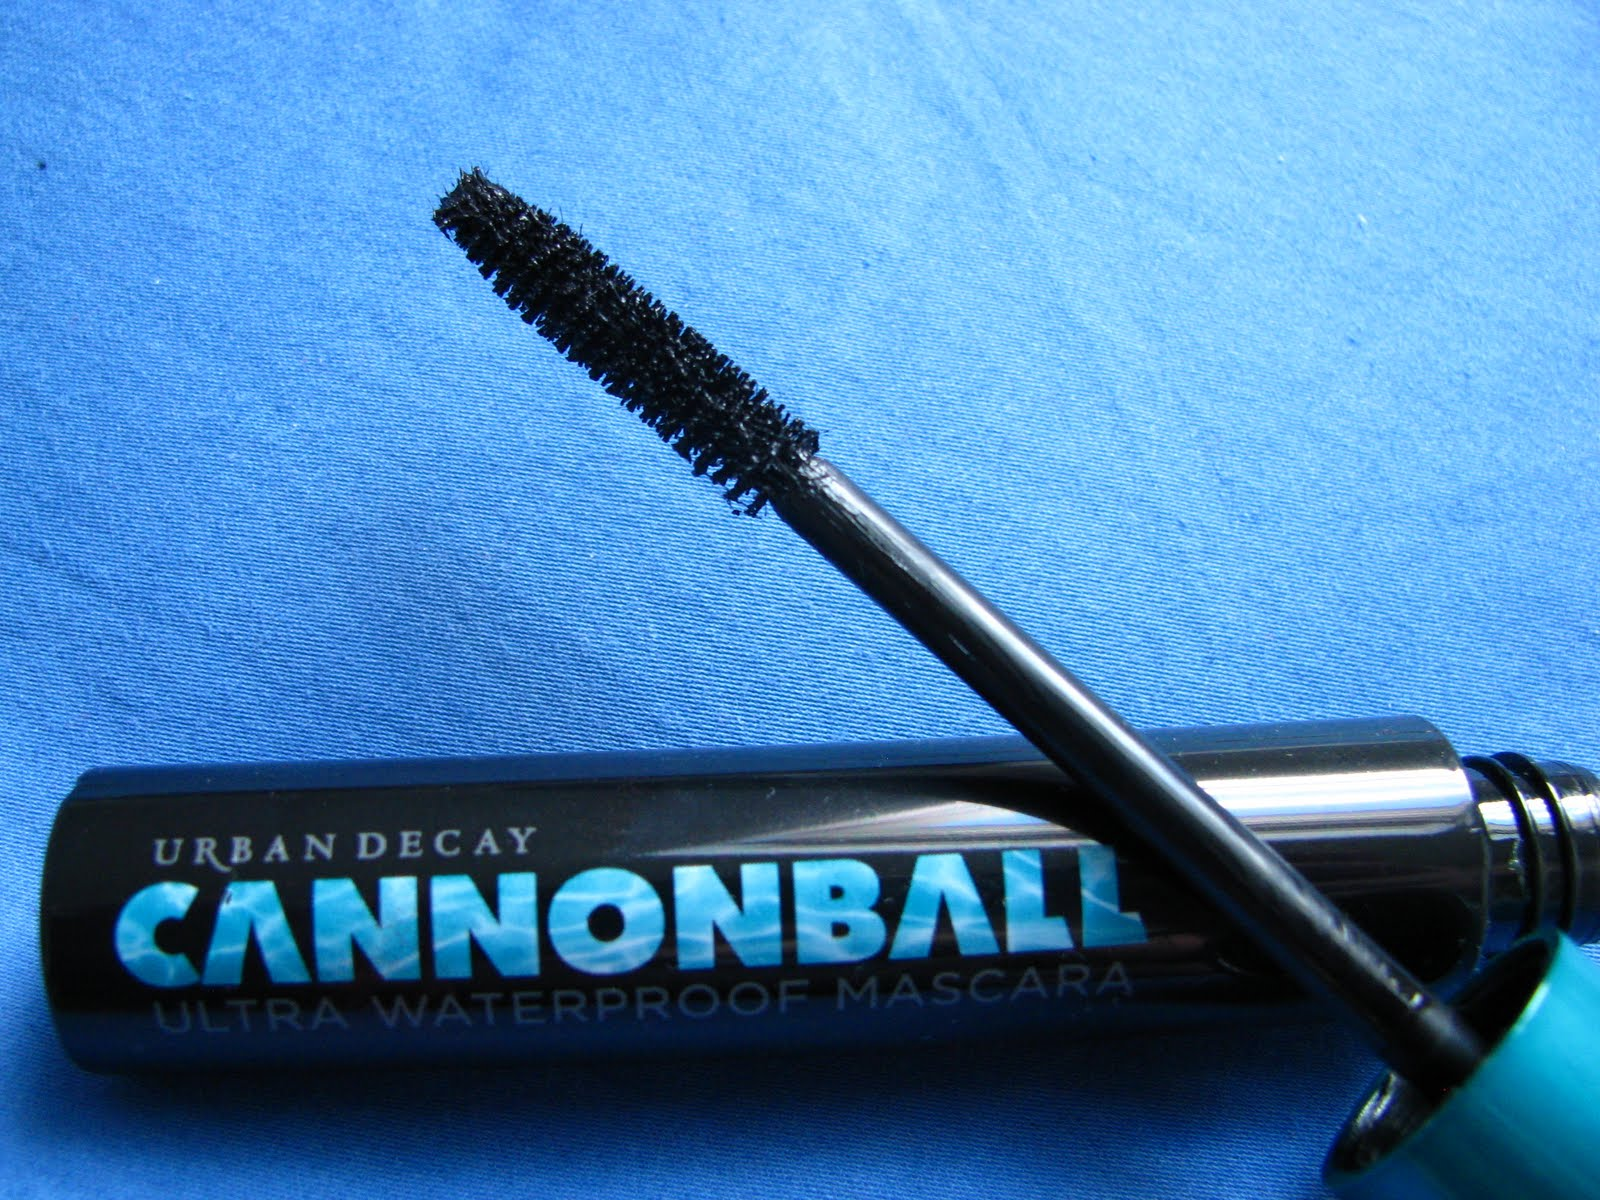 bcdbb141671 Well, those days are officially over. Urban Decay's new Cannonball mascara  is literally, properly waterproof. It simply won't shift when wet.